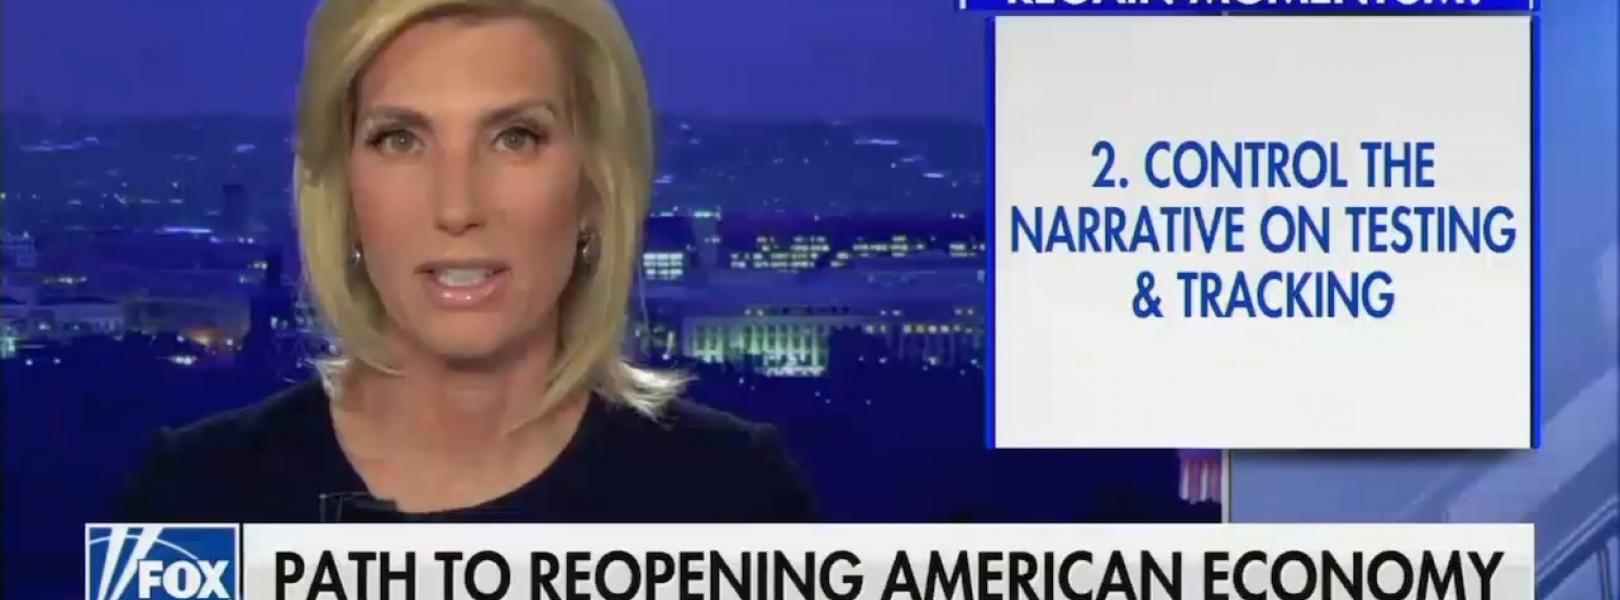 laura-ingraham-what-trump-needs-to-do-control-narrative-testing-04-21-2020.jpg